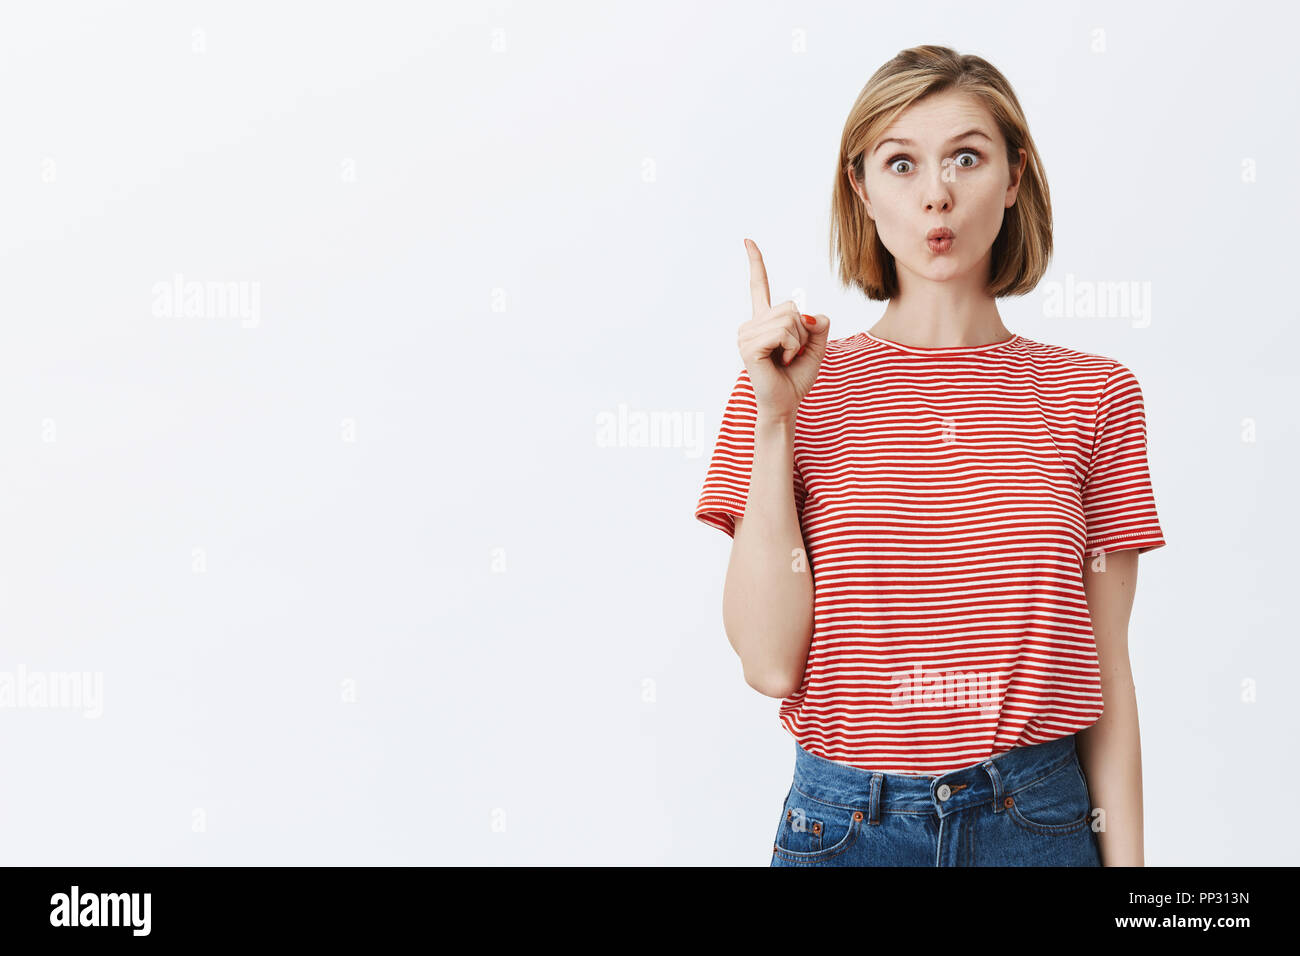 Oh, one more thing. Beautiful girlfriend with clean screen and fair short haircut, raising index fingers in eureka gesture, folding lips curiously, adding interesting suggestion that came in mind - Stock Image